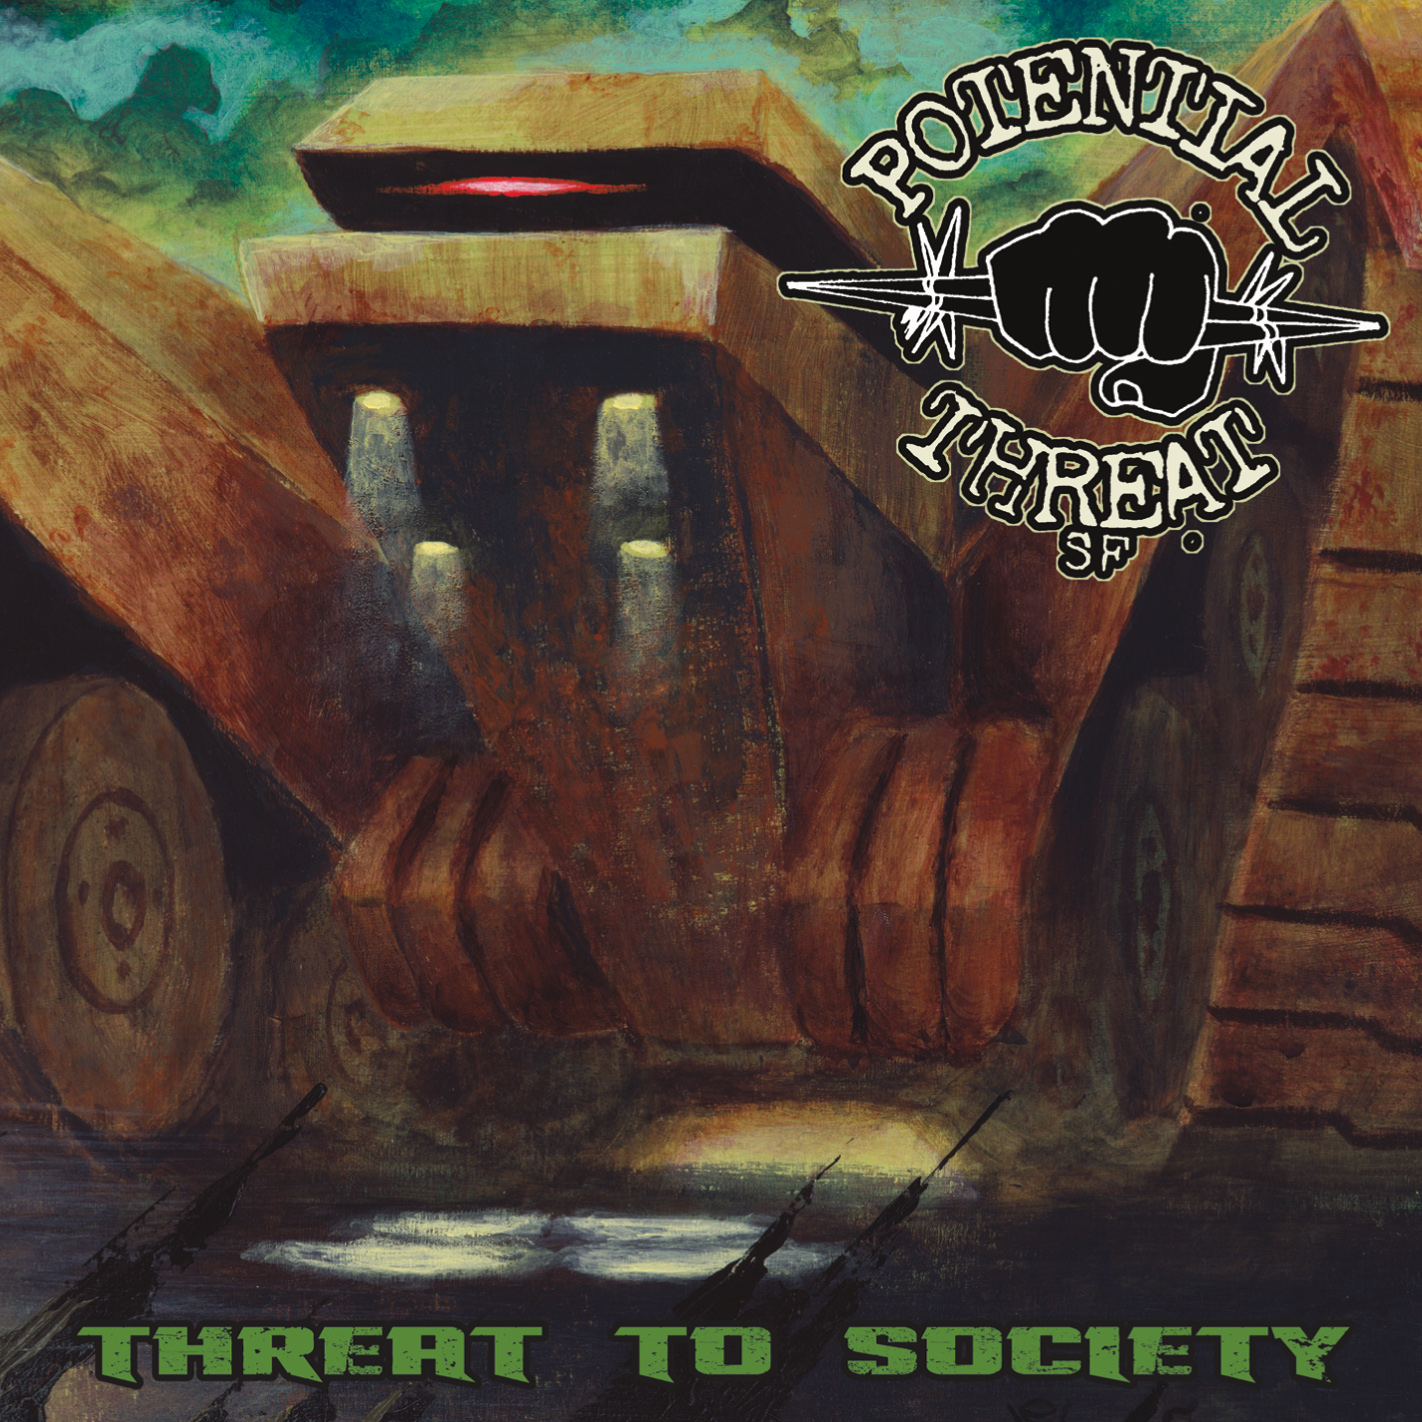 potential-threat-sf-threat-to-society-ein-album-review